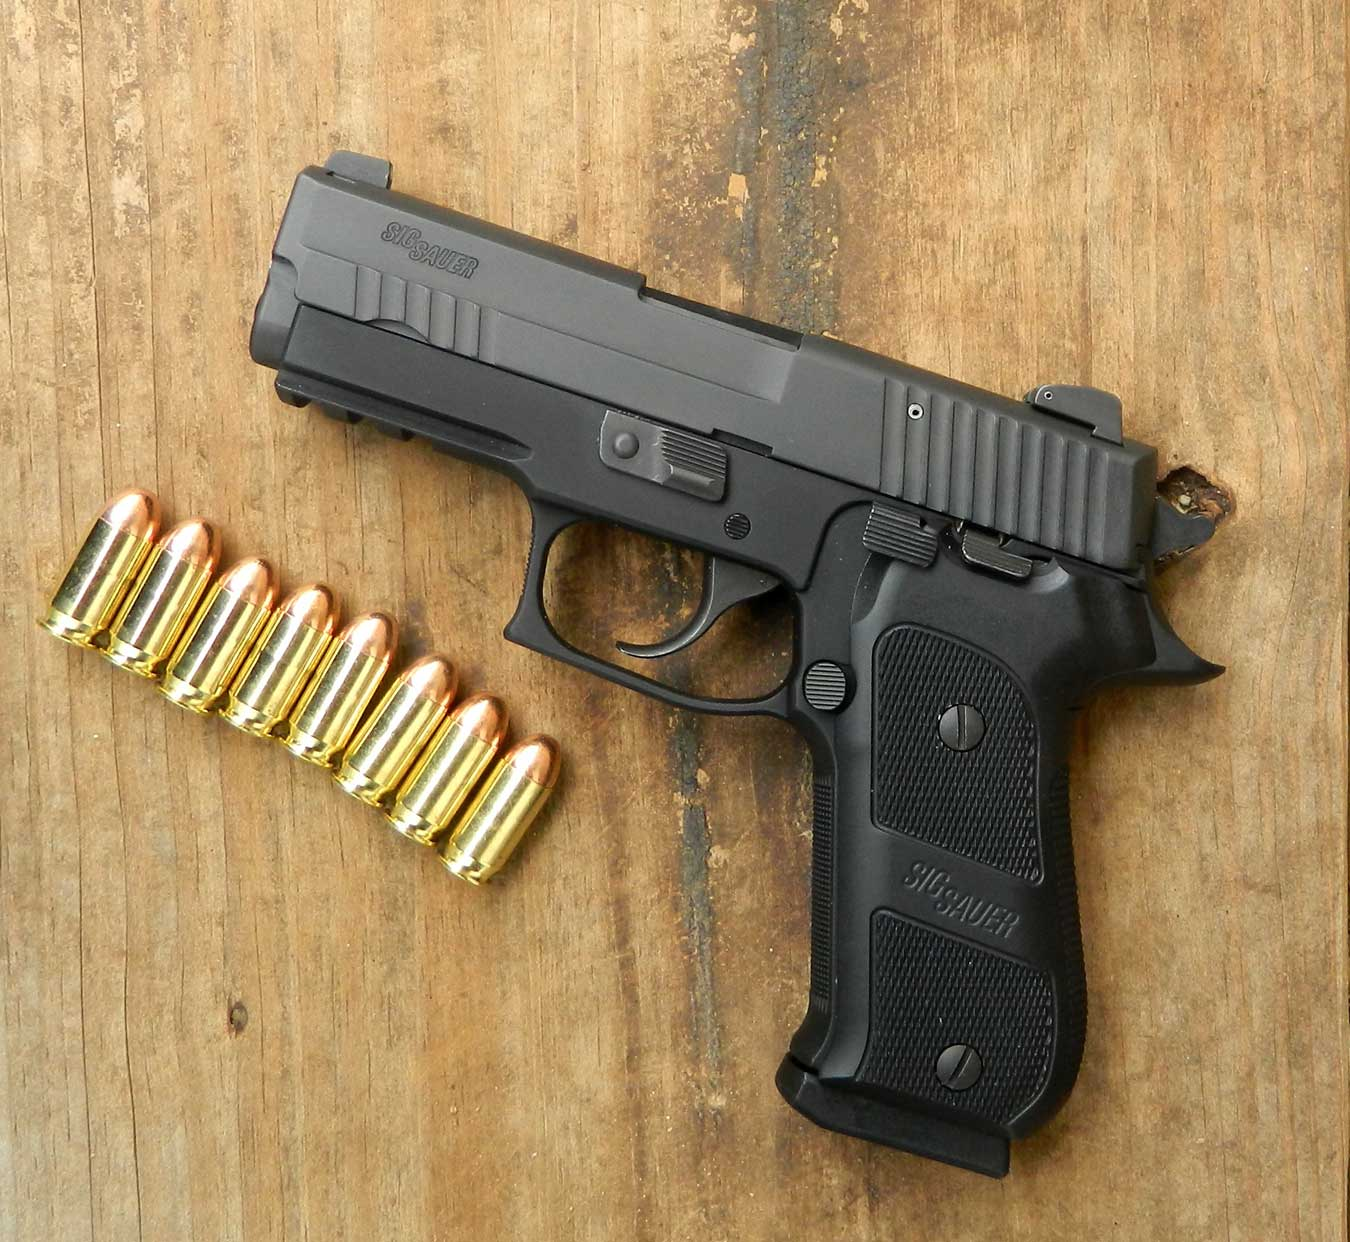 SIG Sauer handgun and several rounds of ammunition